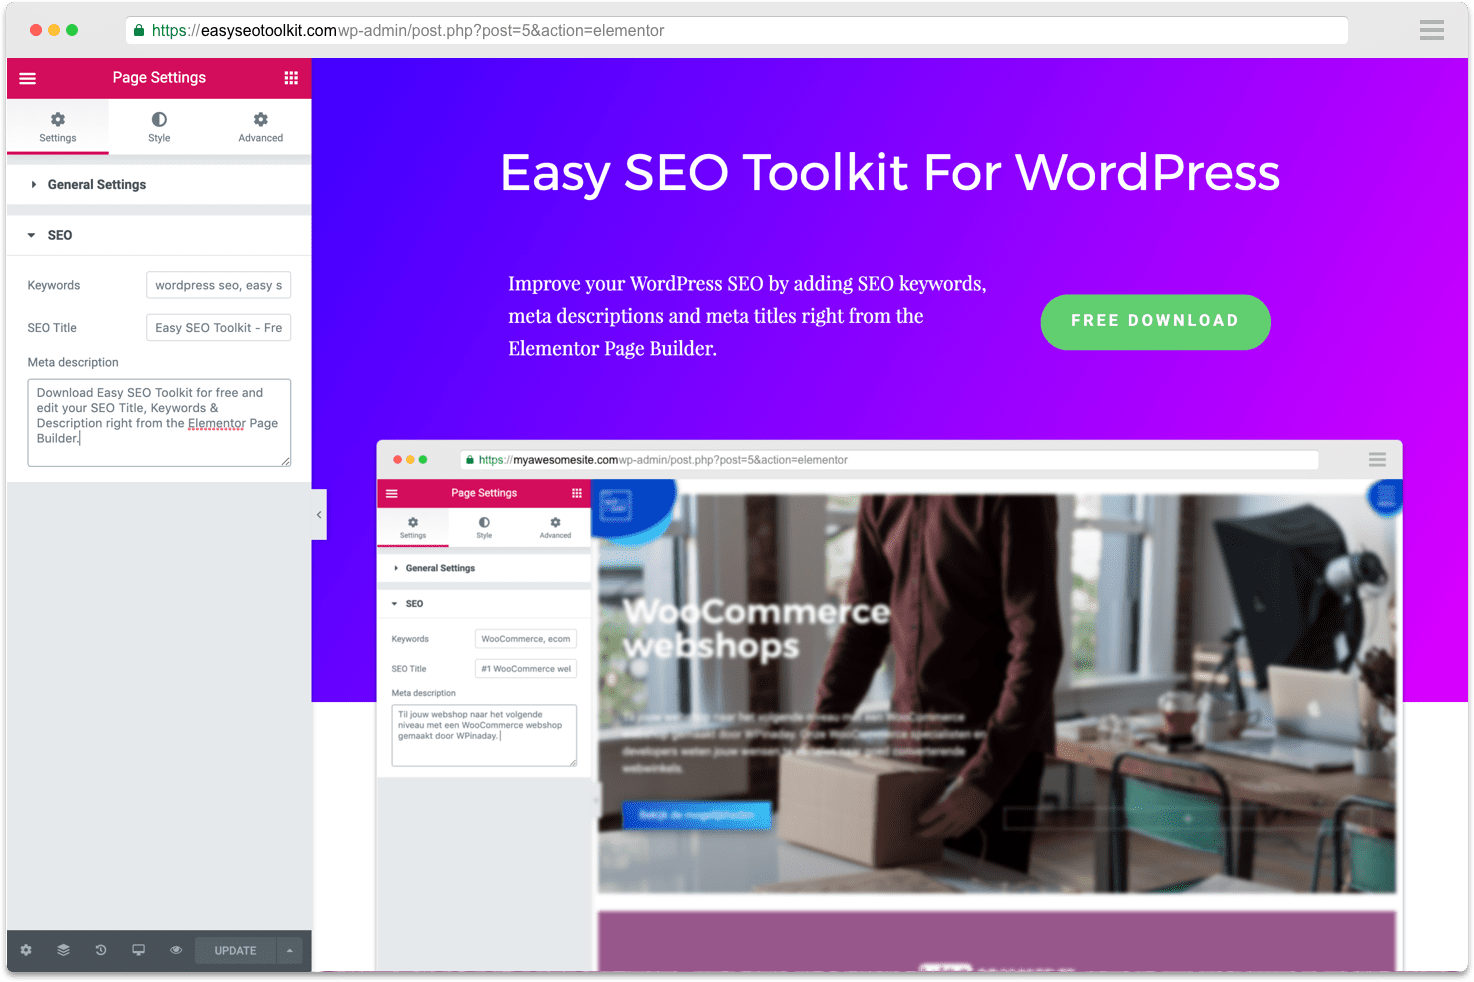 Easy SEO Toolkit for WordPress - Elementor SEO